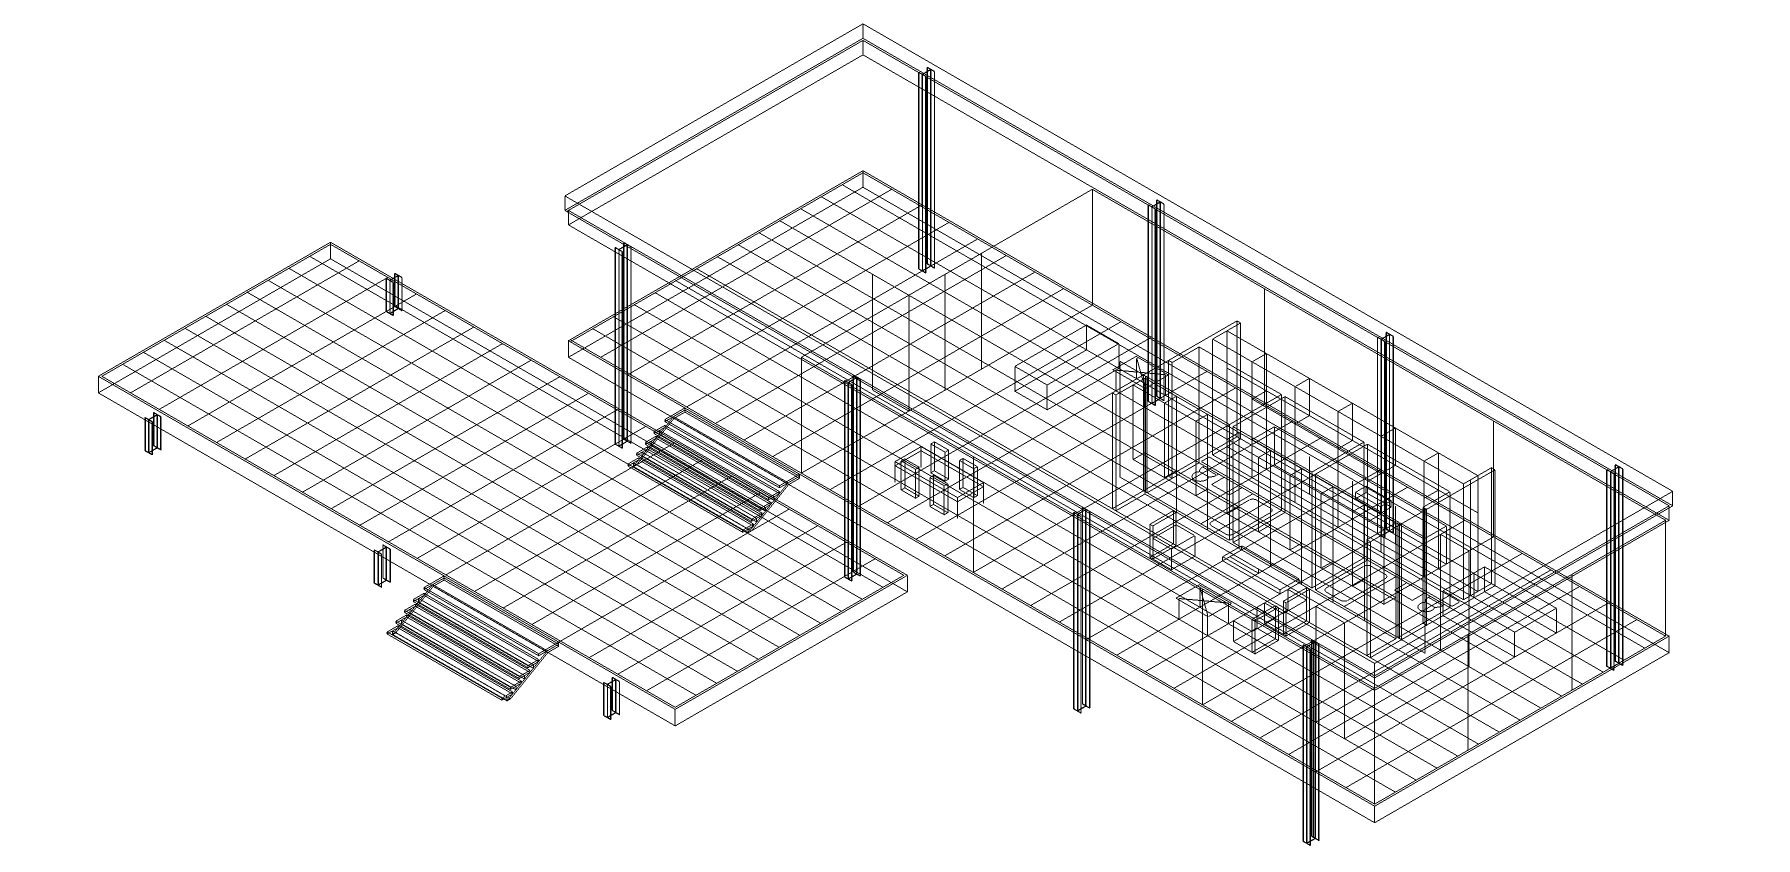 Digital and Physical Model of Farnsworth House